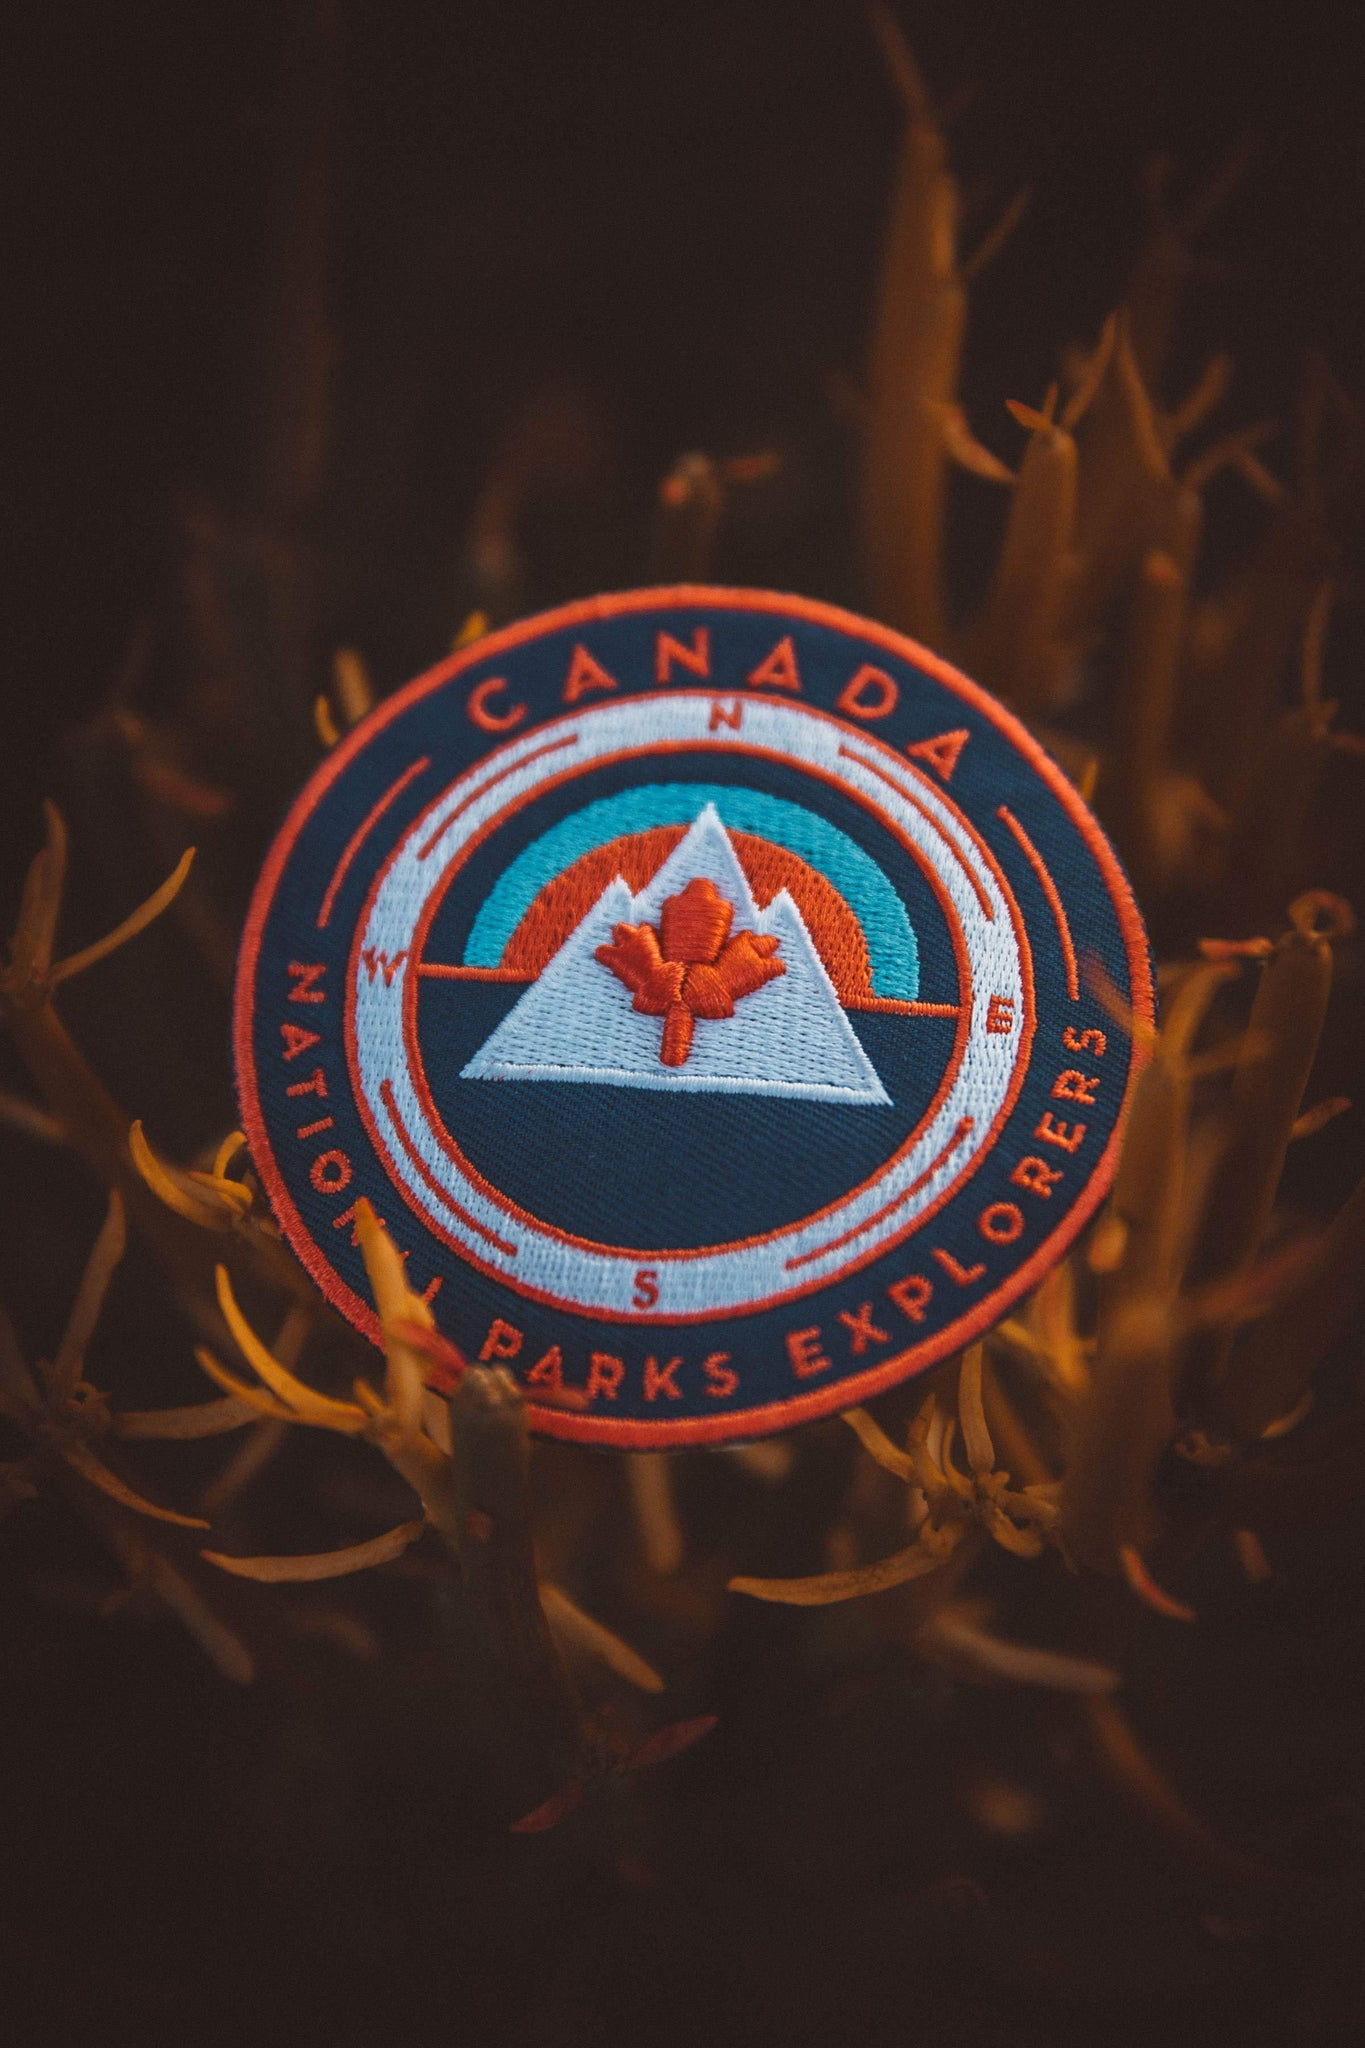 Canada Maple Leaf National Parks Explorer's Patch - The Parks Apparel